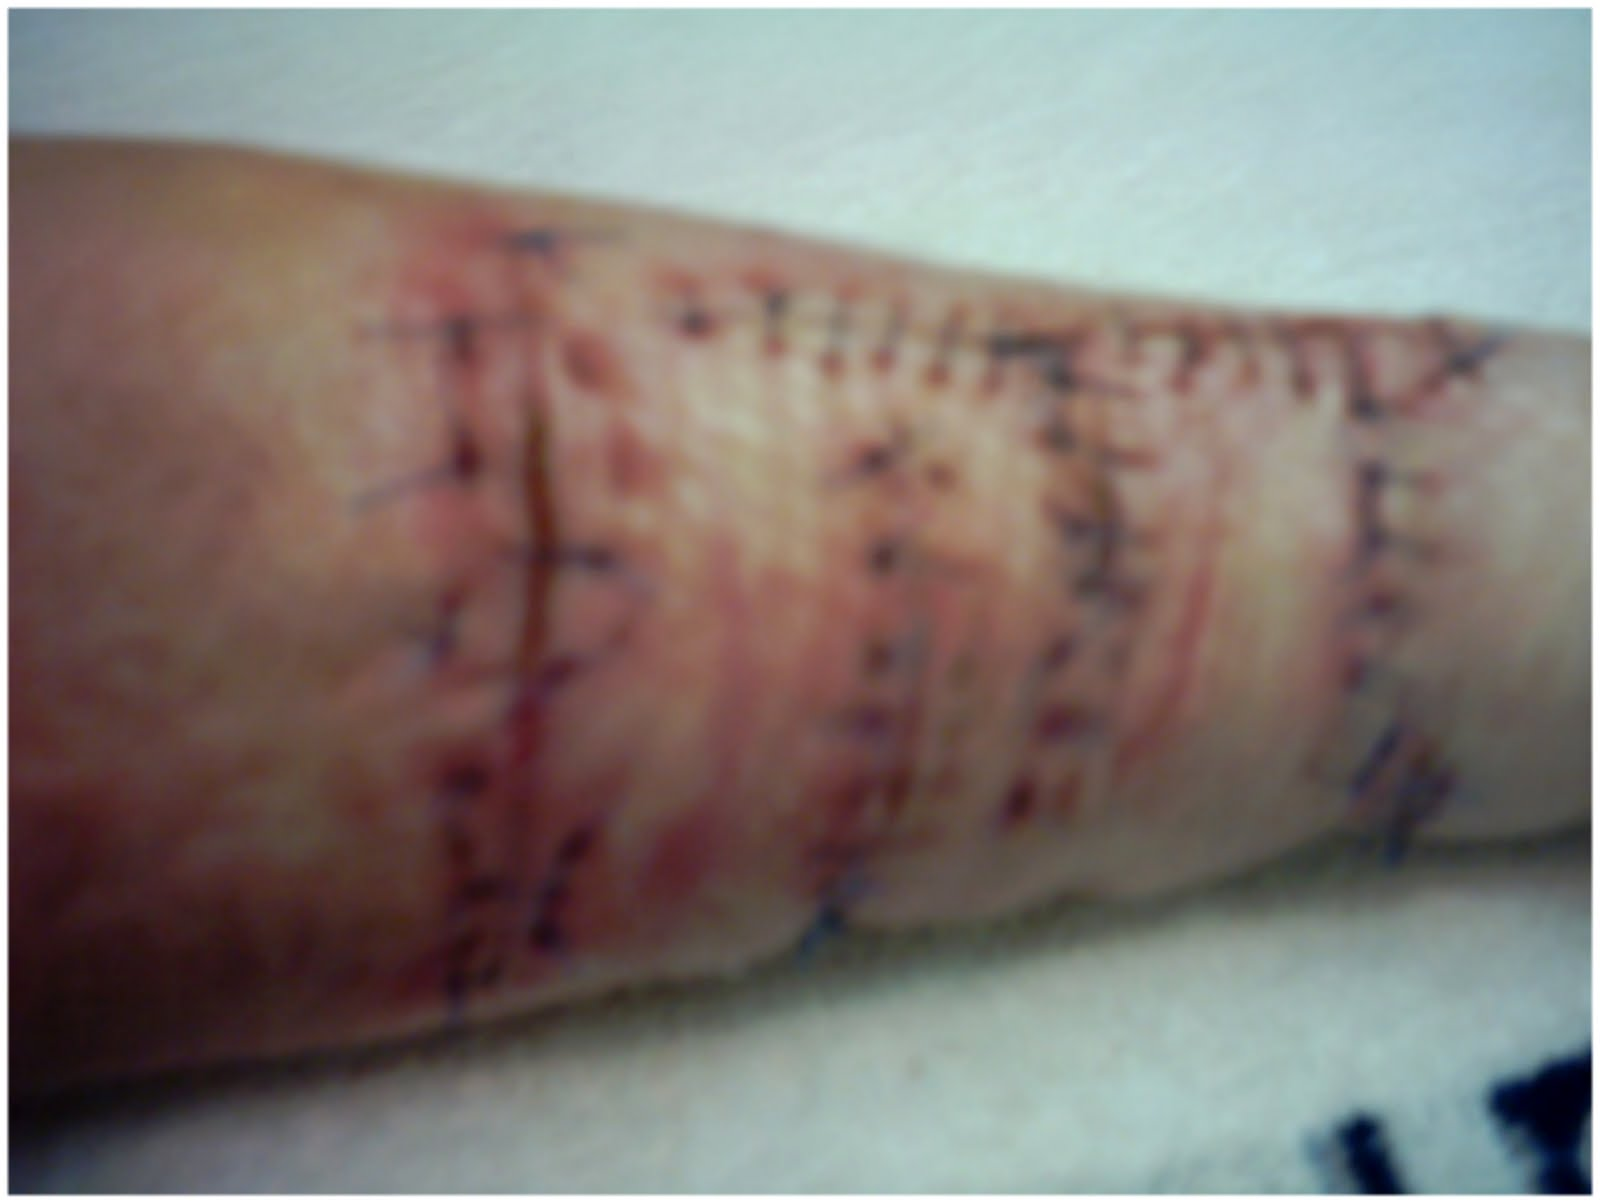 My arm after surgery after I'd severed 3 tendons.